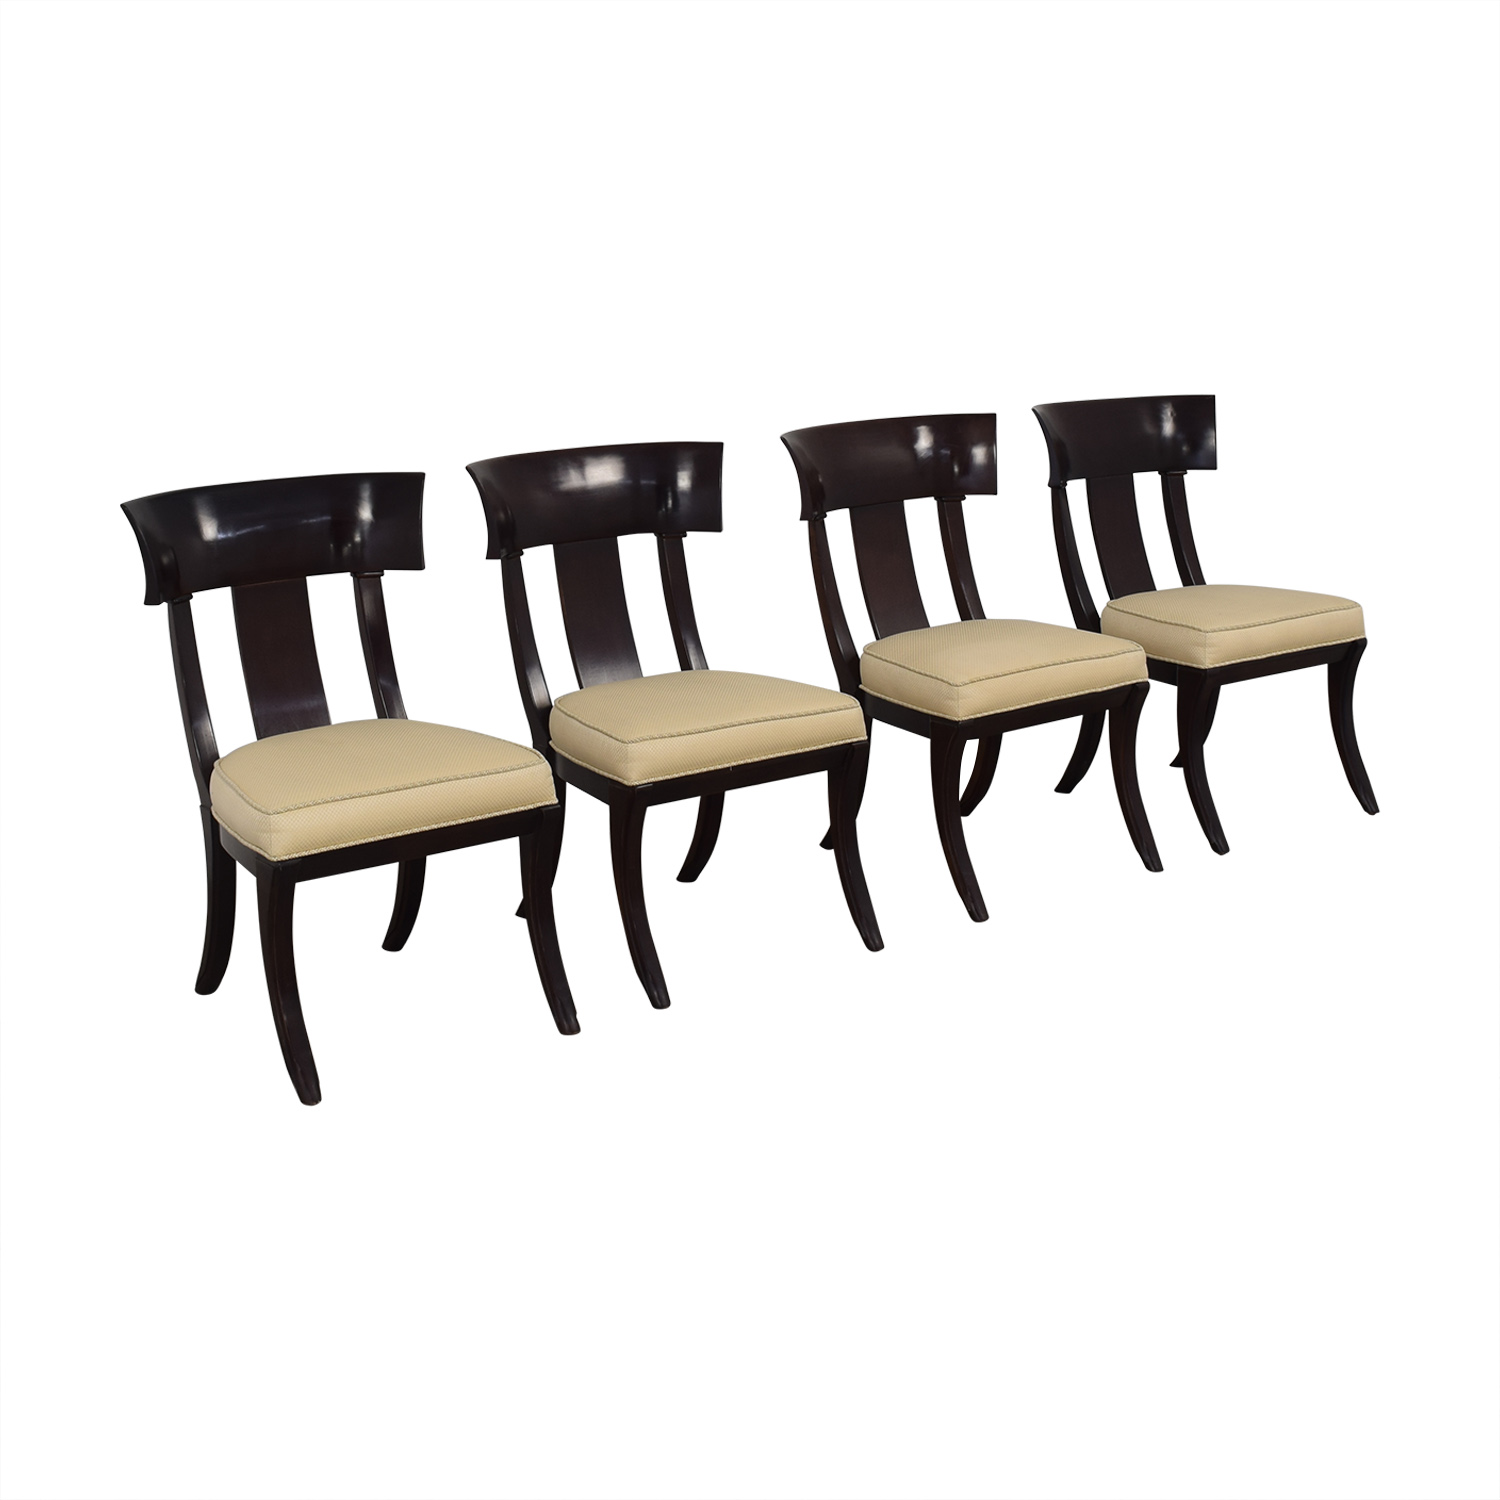 buy Henredon Upholstered Dining Chairs Henredon Furniture Dining Chairs